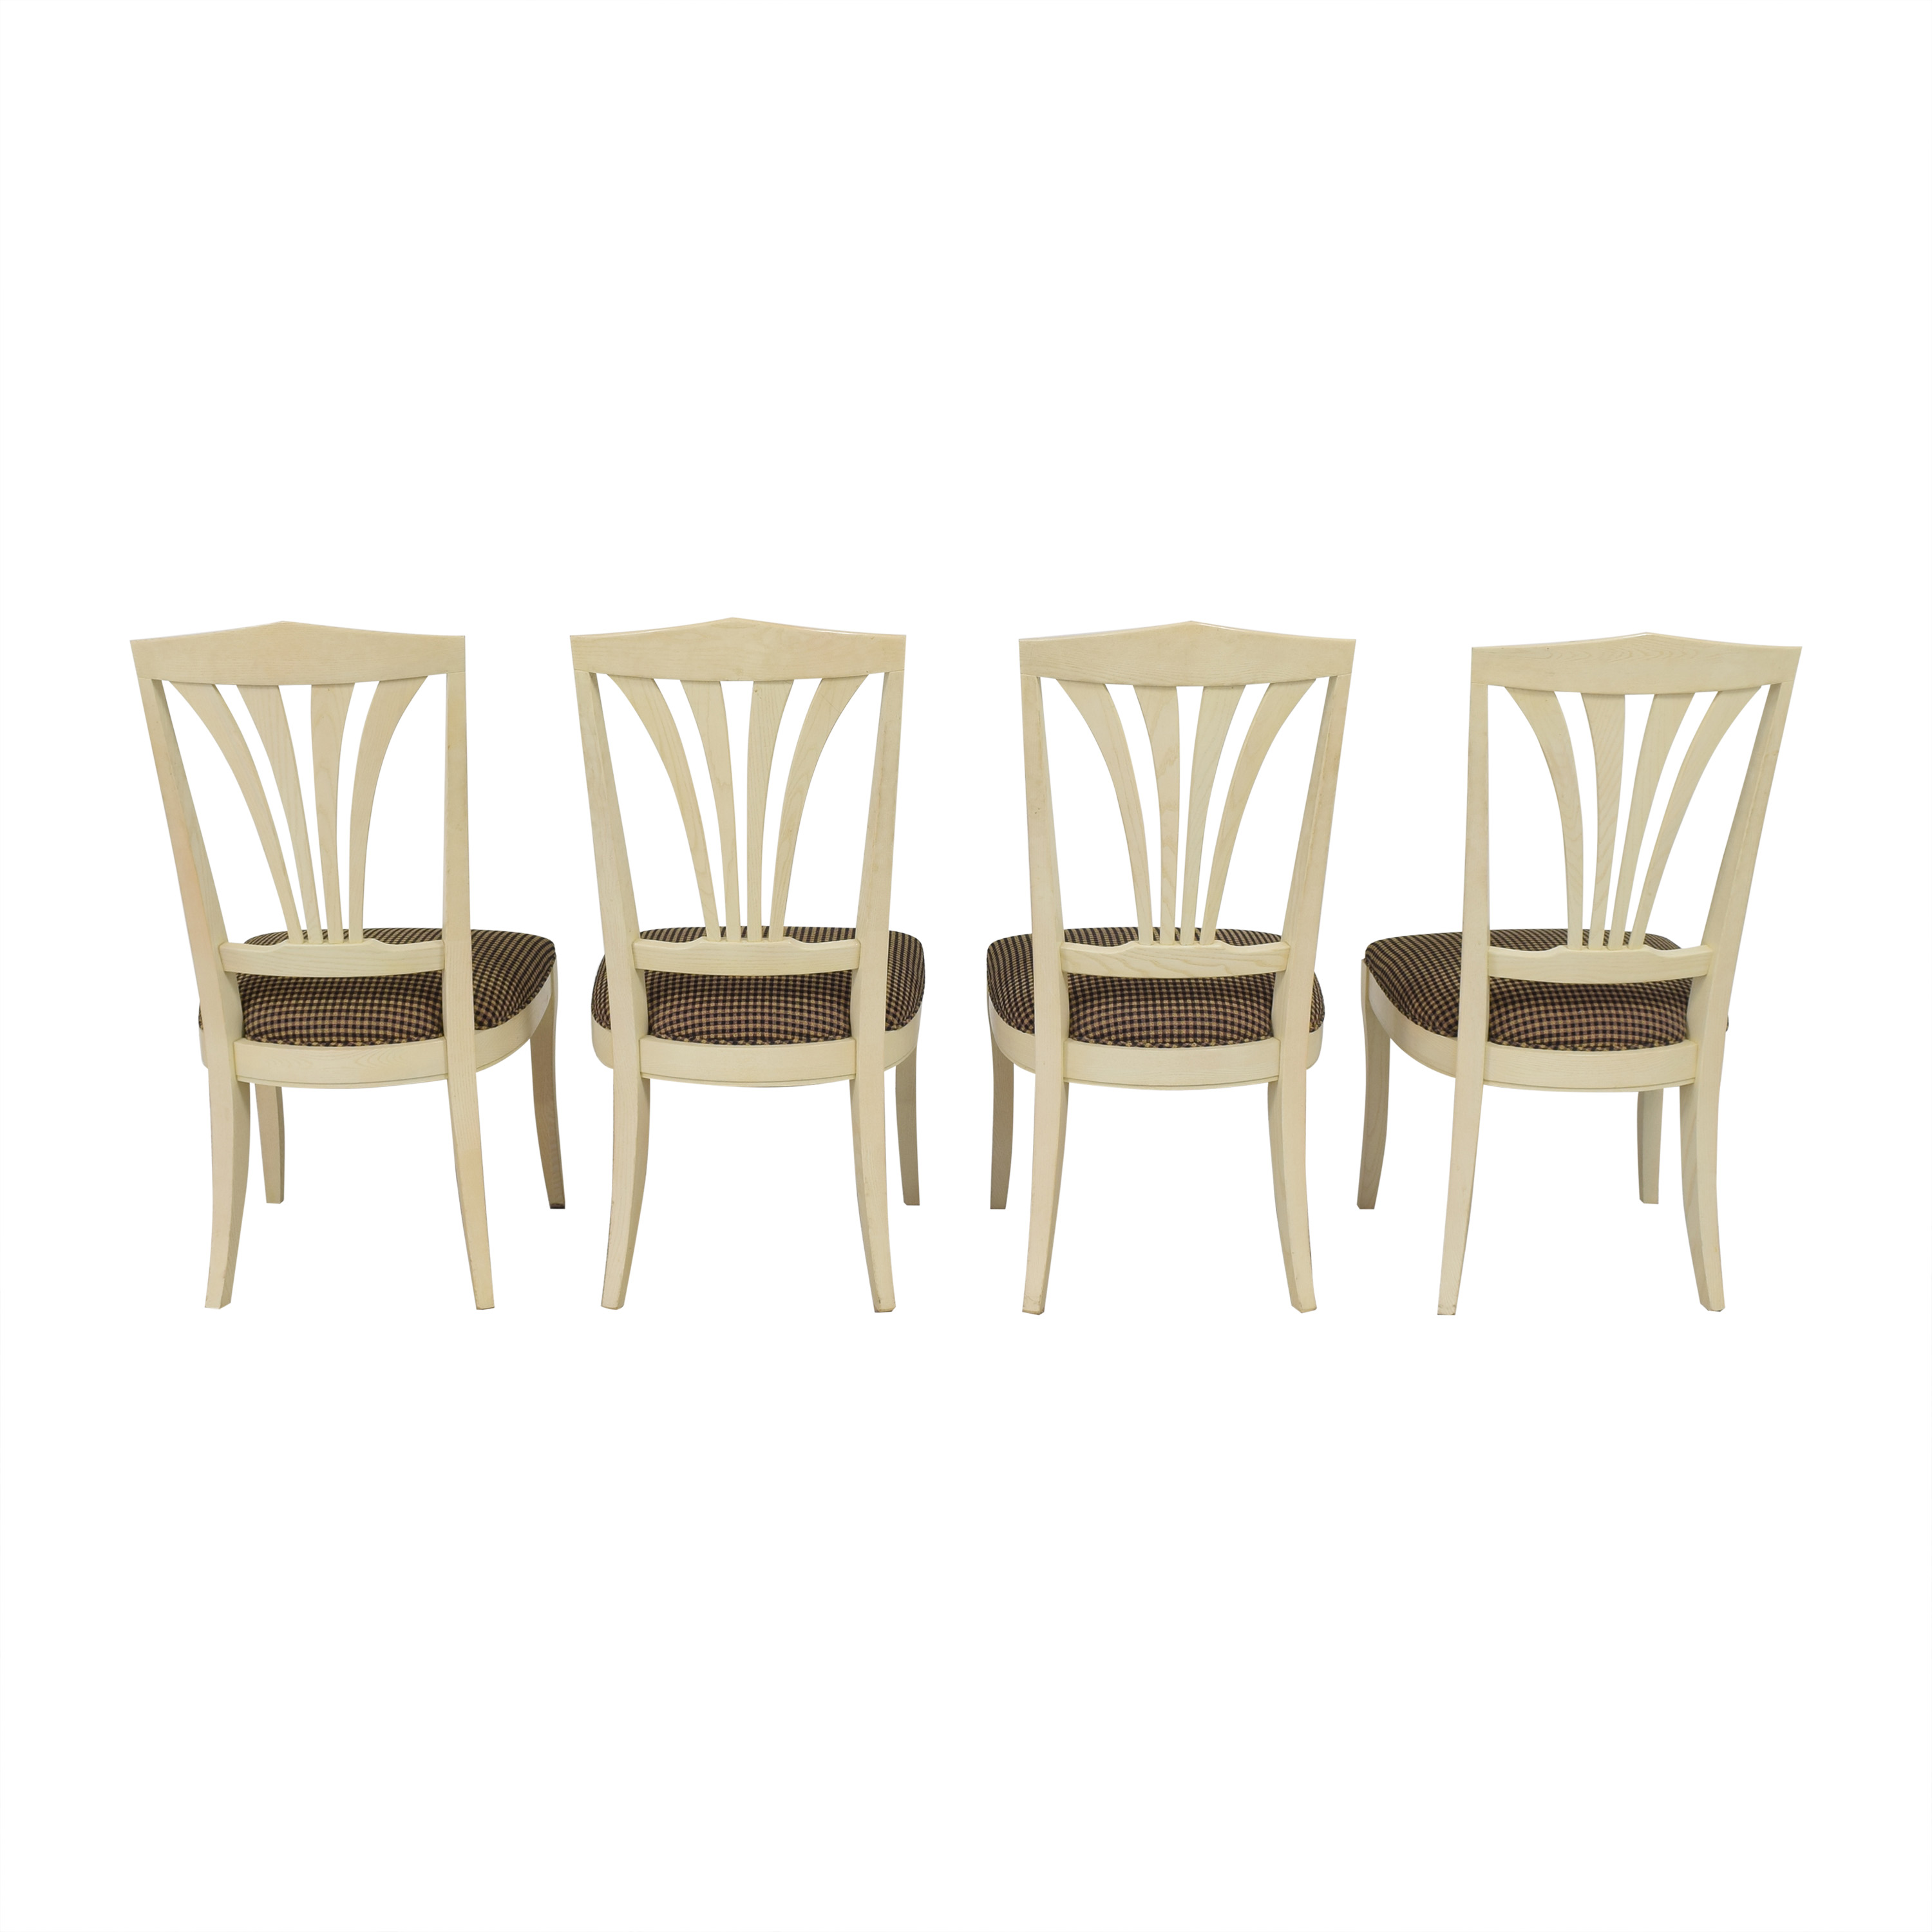 Ethan Allen Ethan Allen Dining Side Chairs ct